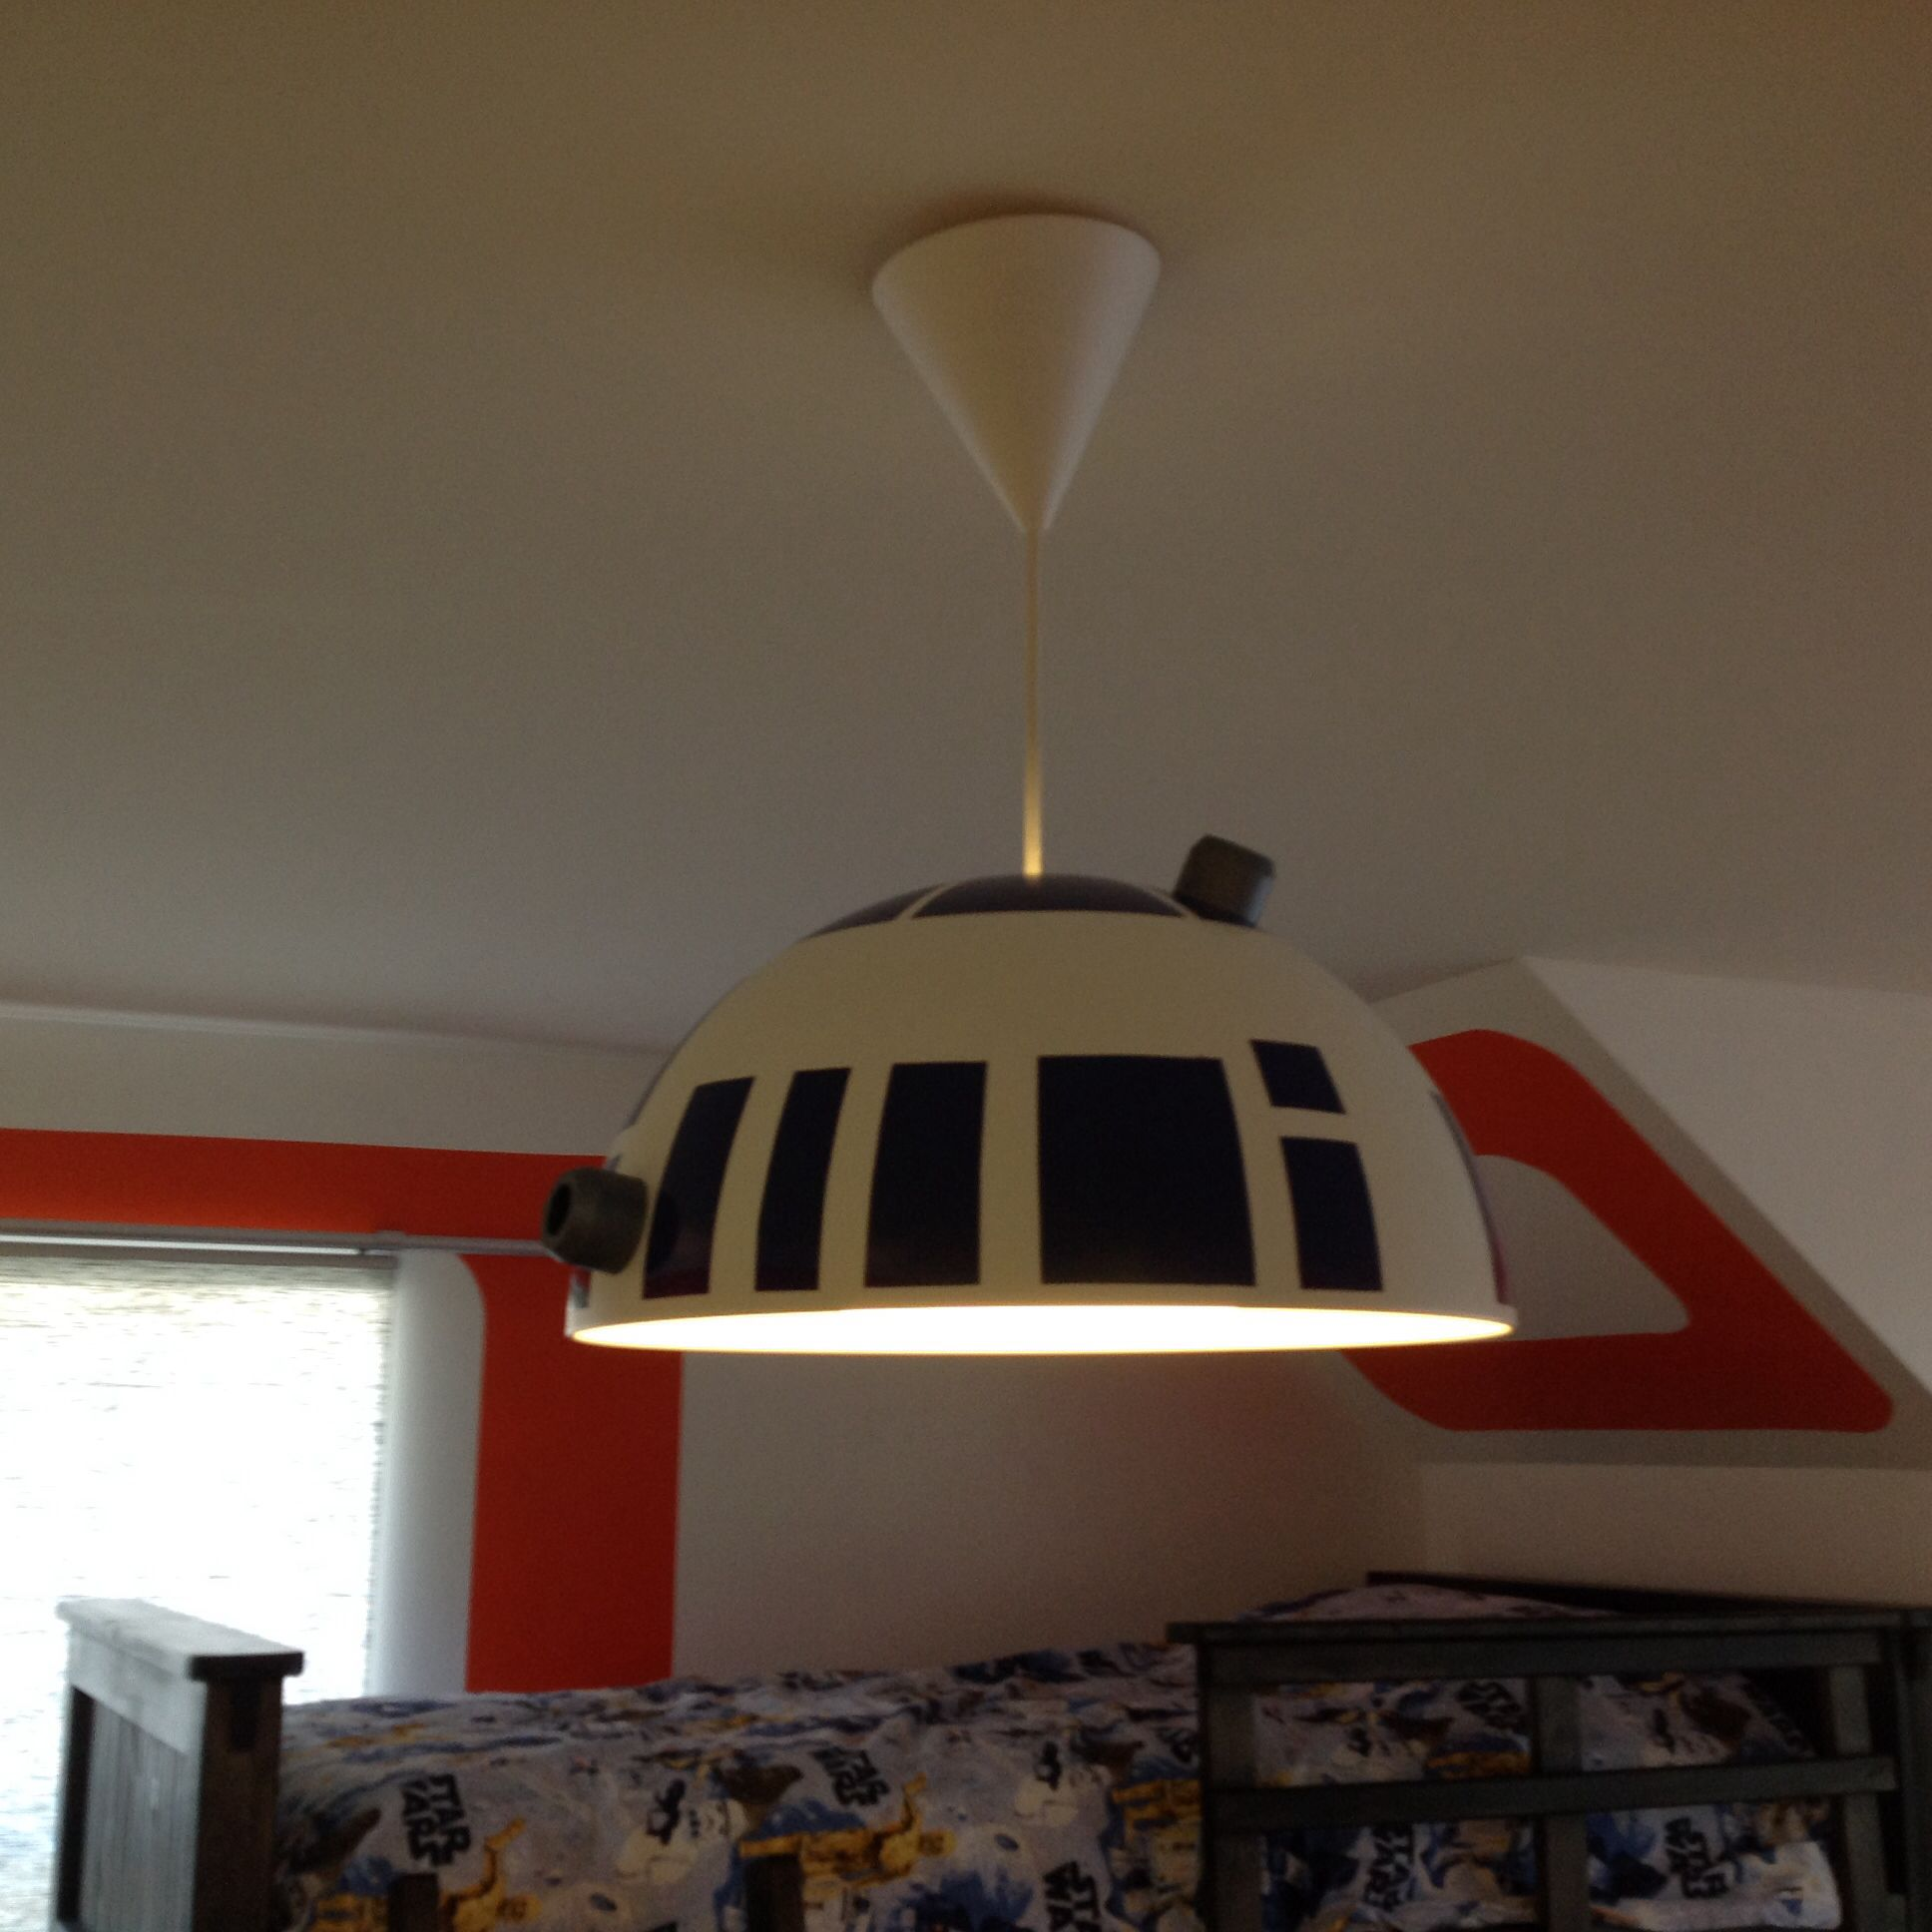 Space Themed Lamp Star Wars Inspired Bedroom For 7 Year Old Boy R2d2